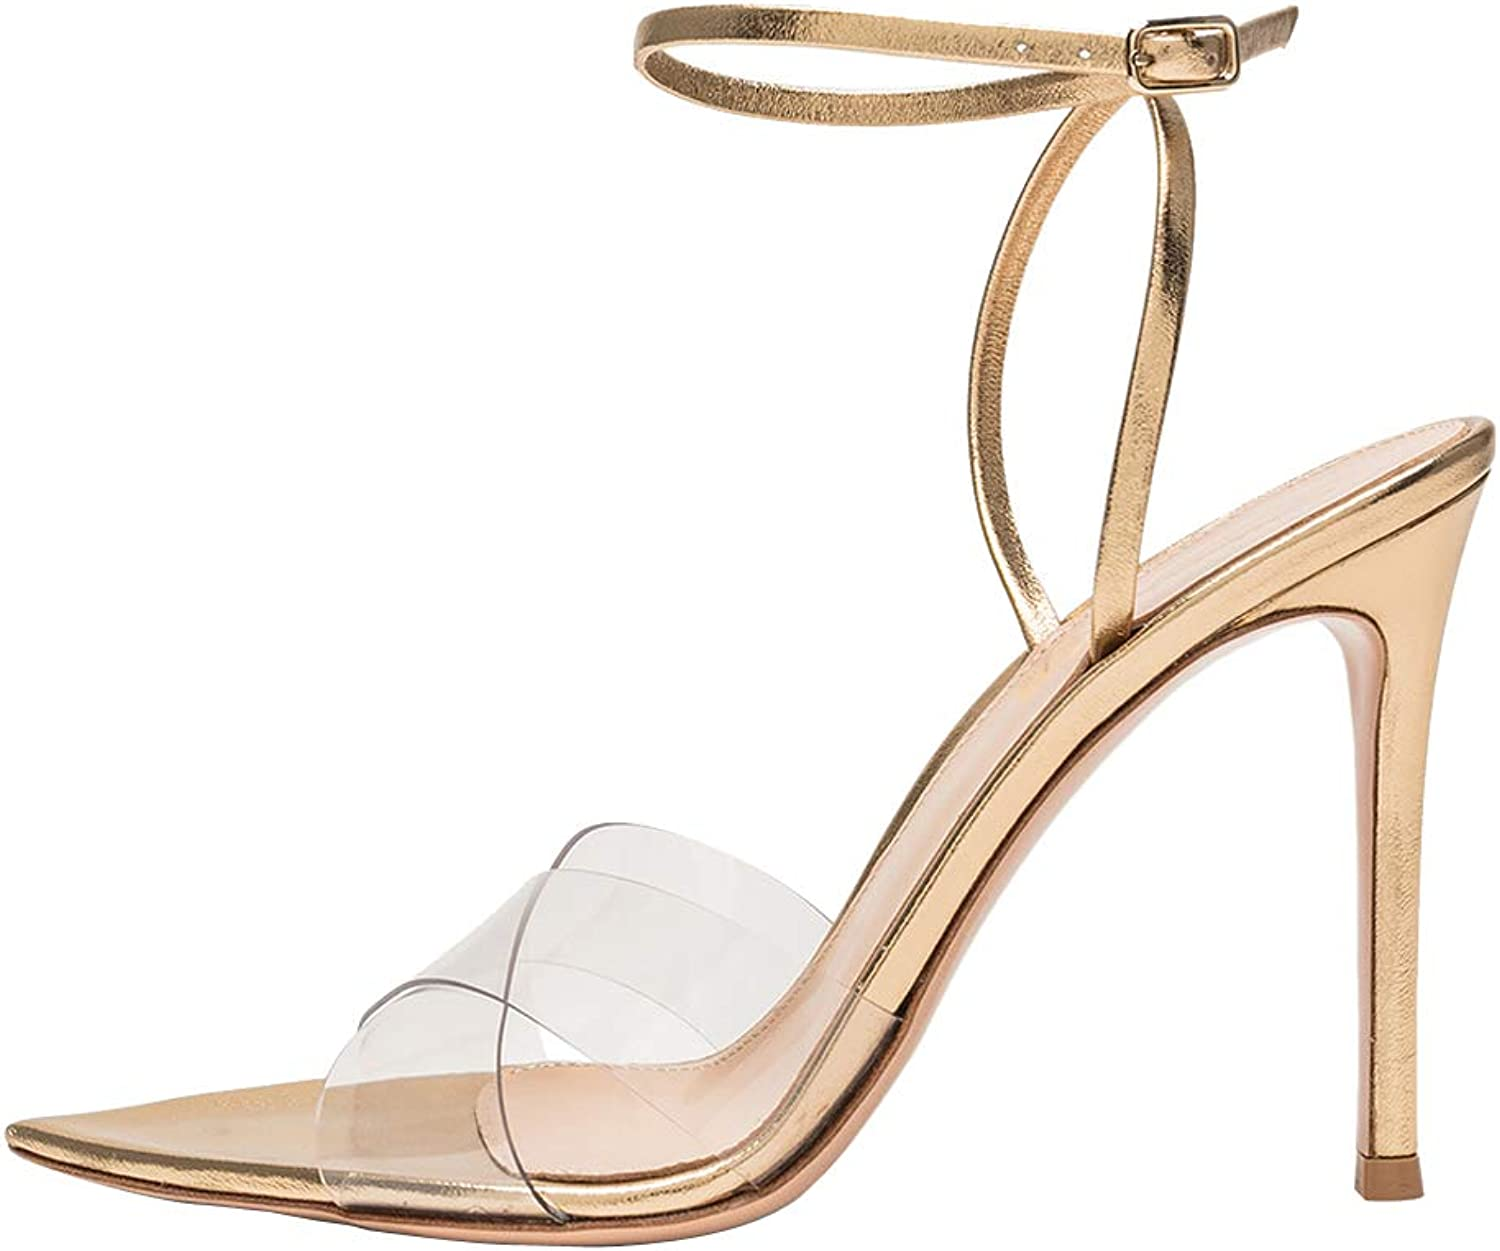 Themost Sandals for Women Sharp Toe Ankle Strap High Heels Stiletto Heel Pumps Transparent shoes Big Size